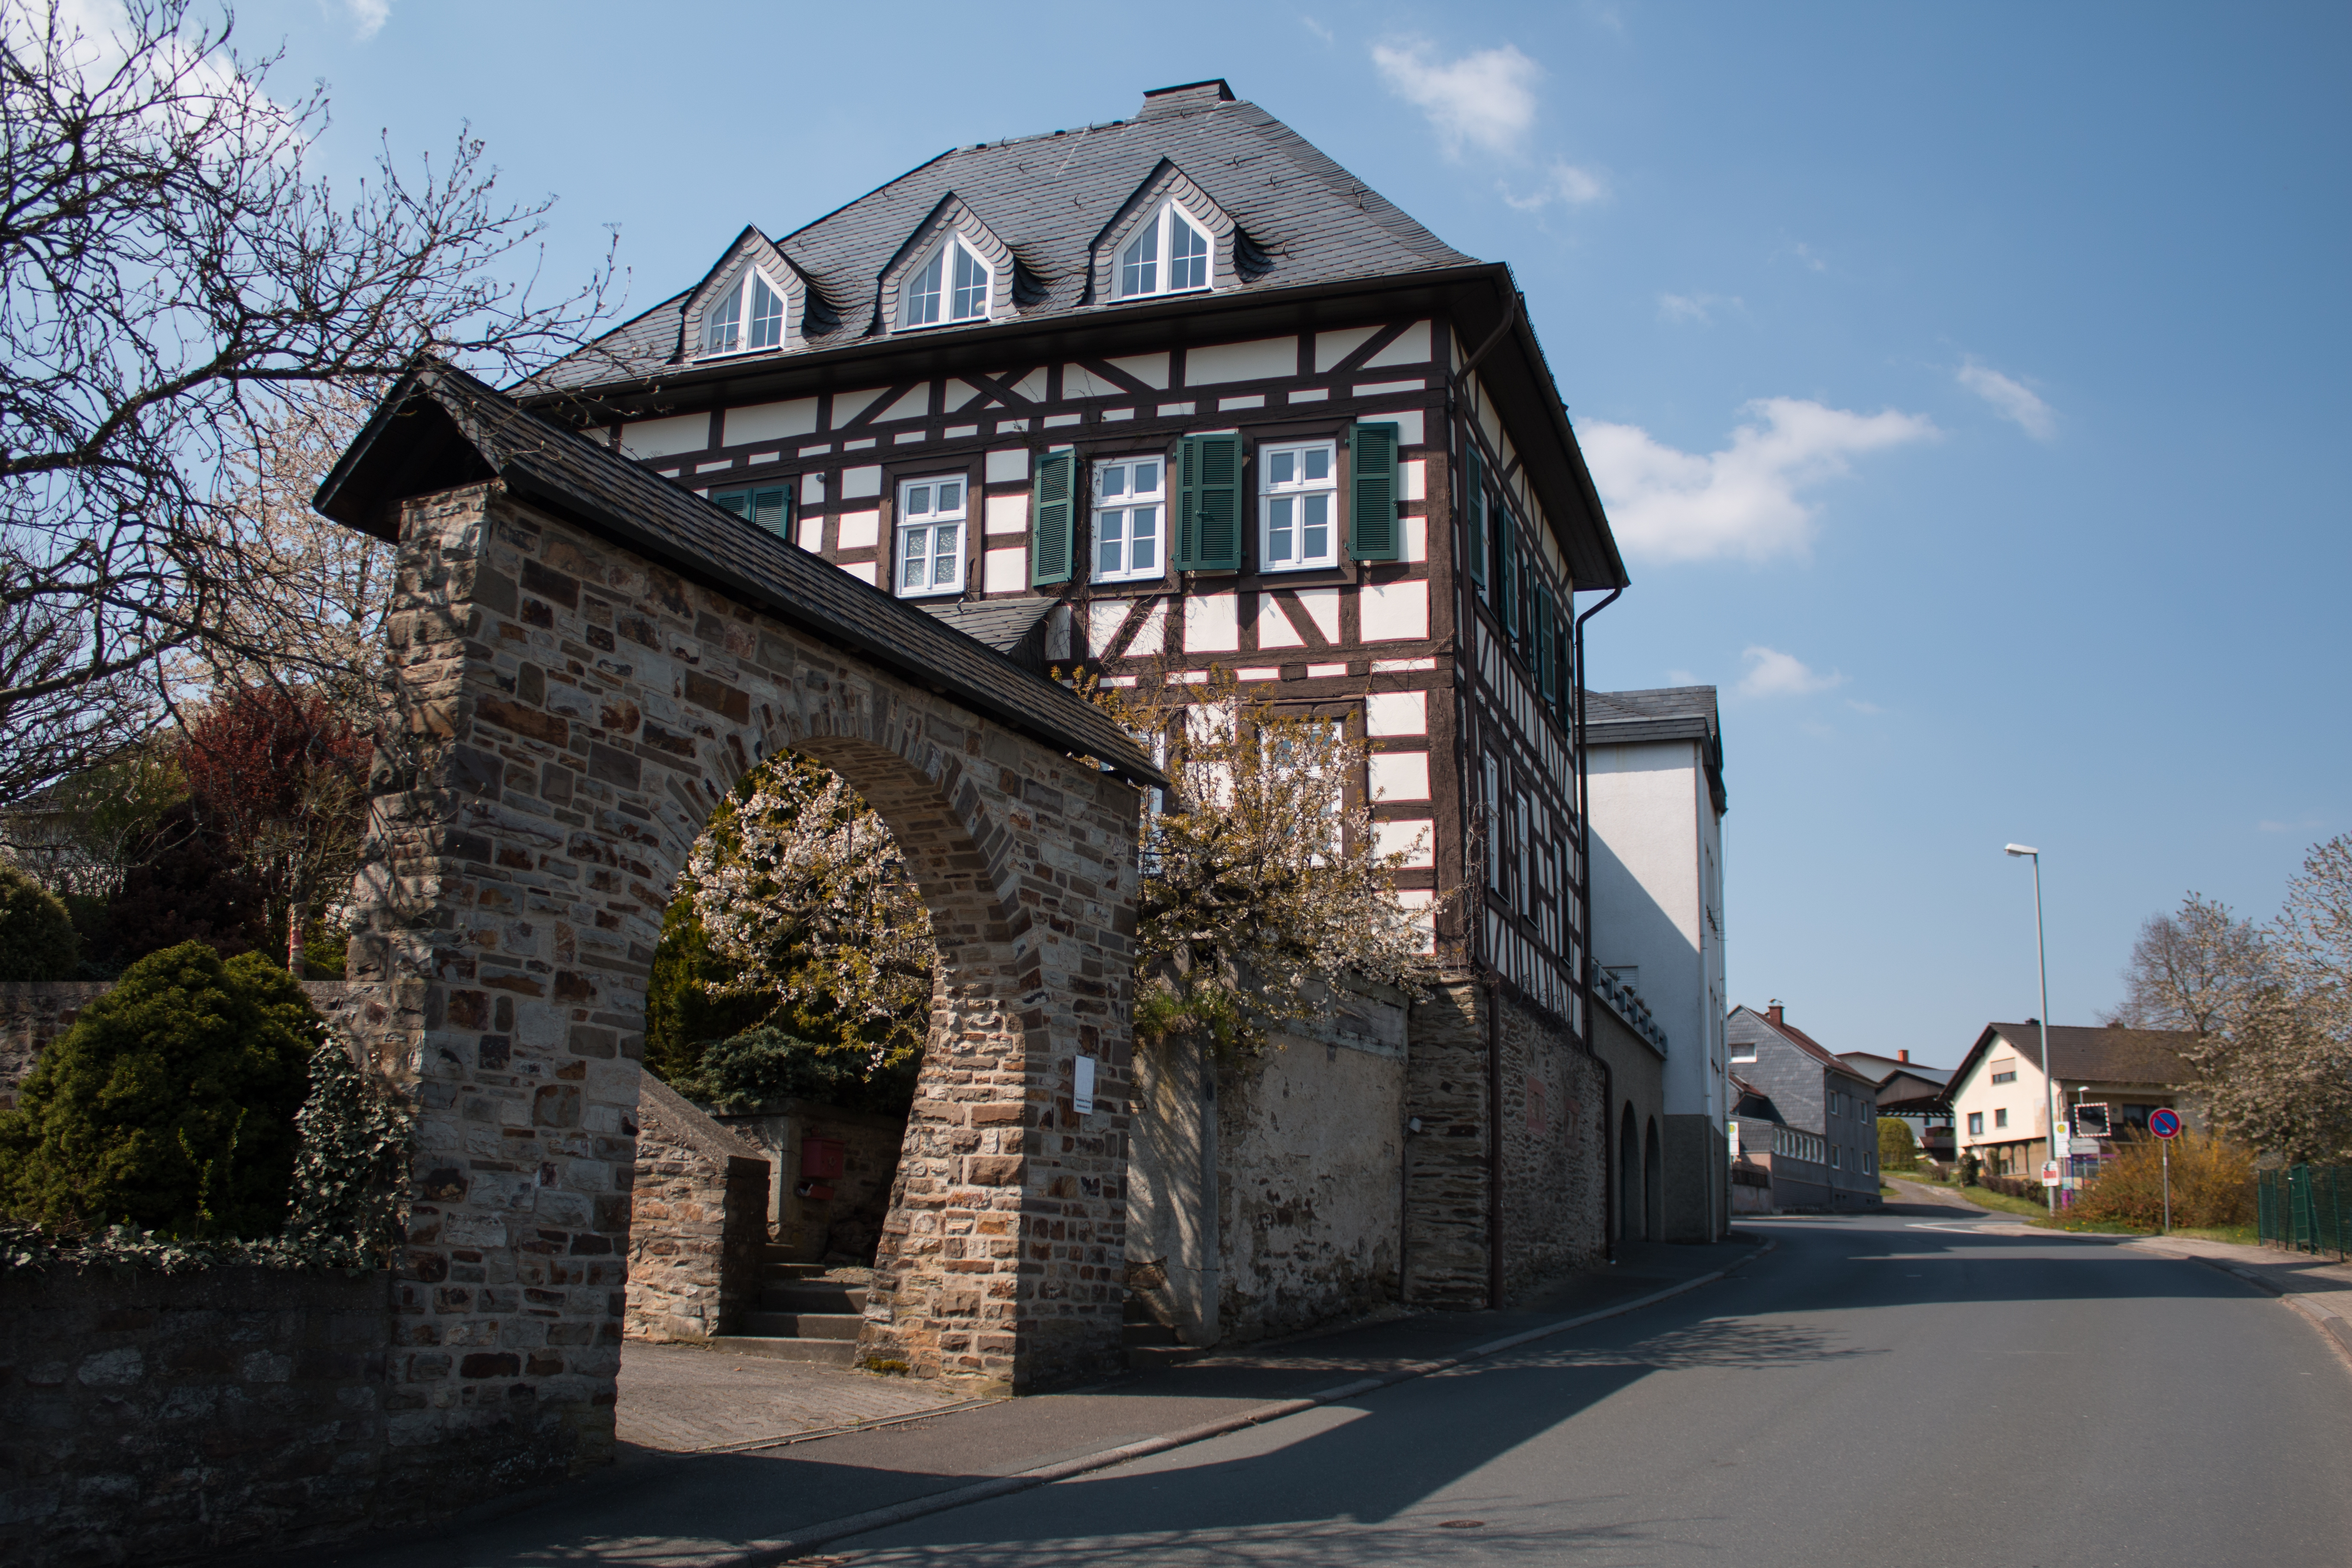 Wallrabenstein-3.jpg